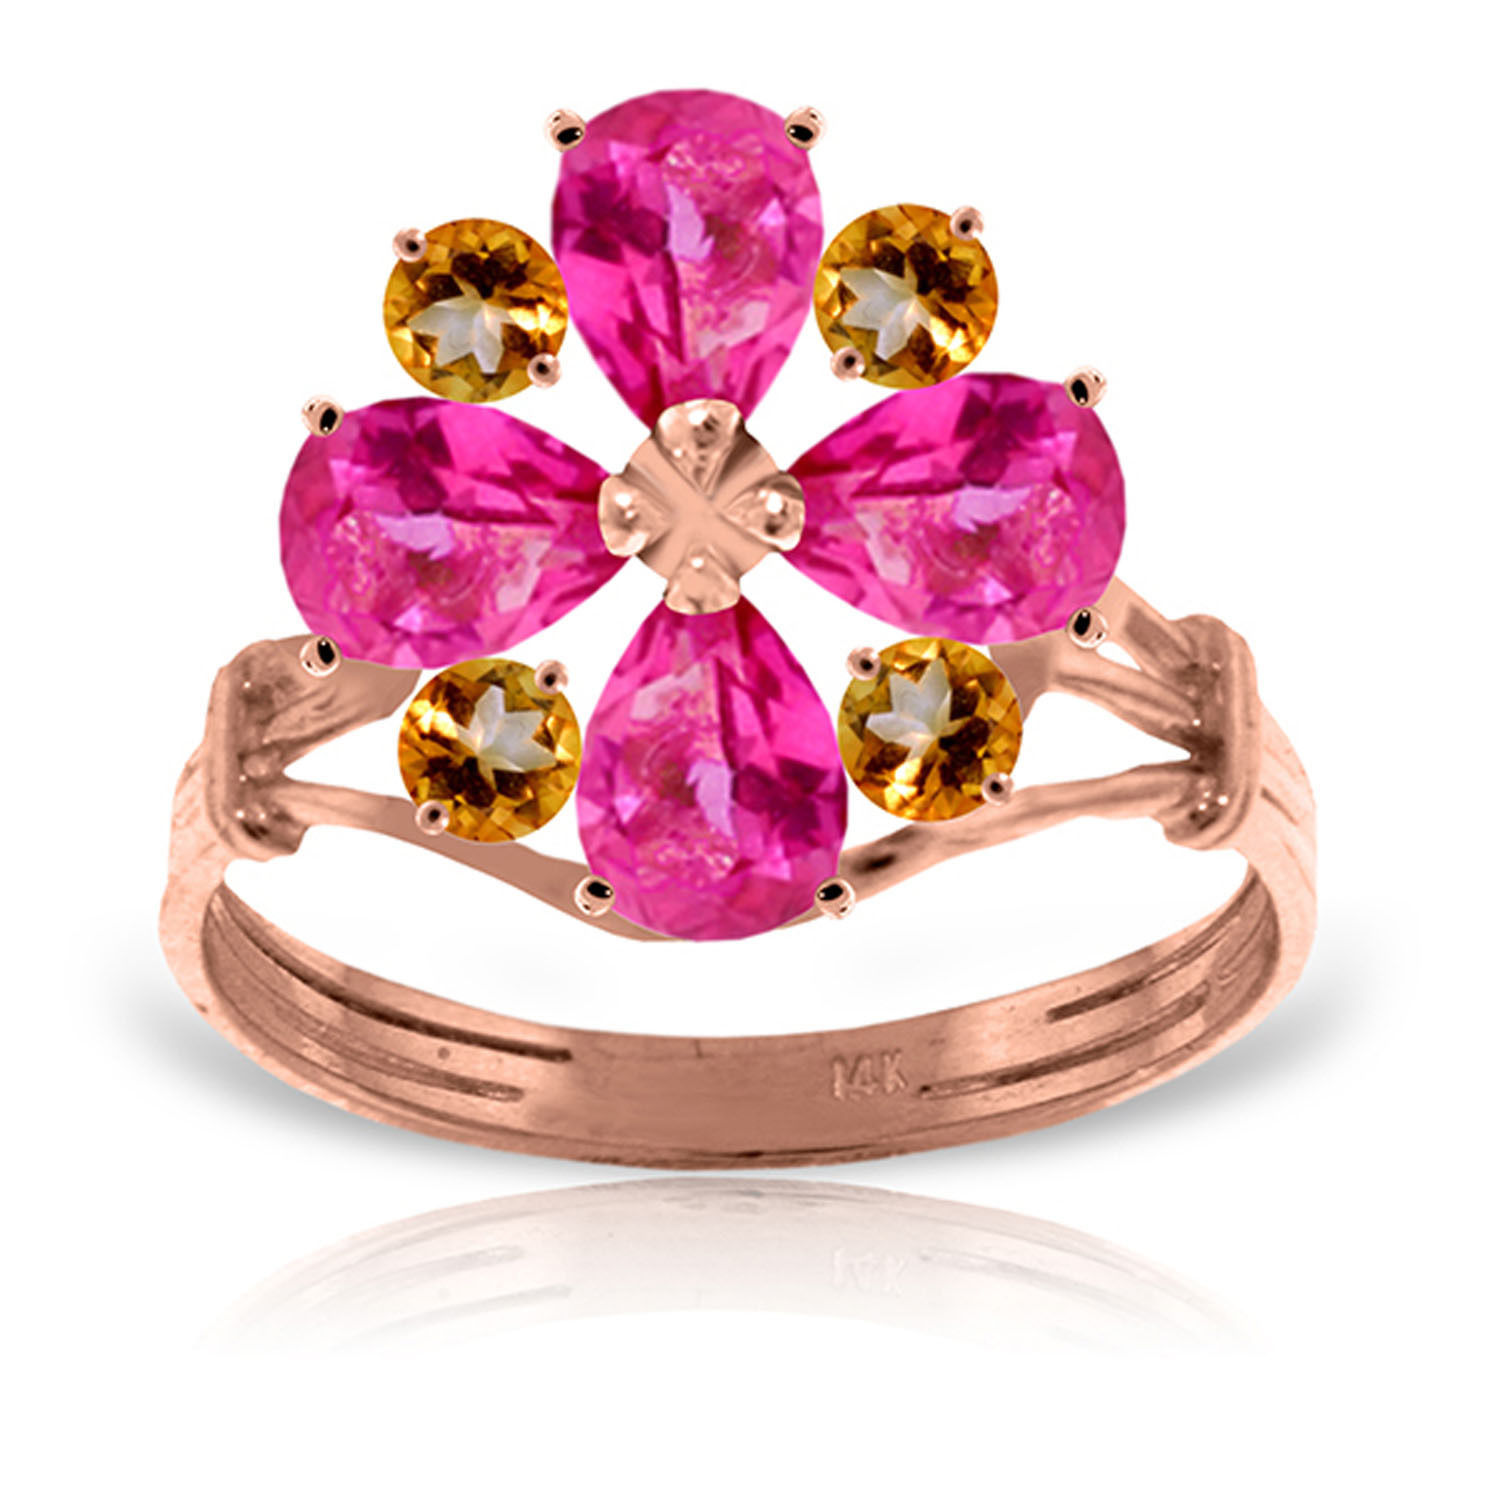 Brand New 14K Solid Rose Gold Ring with Natural Pink Topaz & Citrine